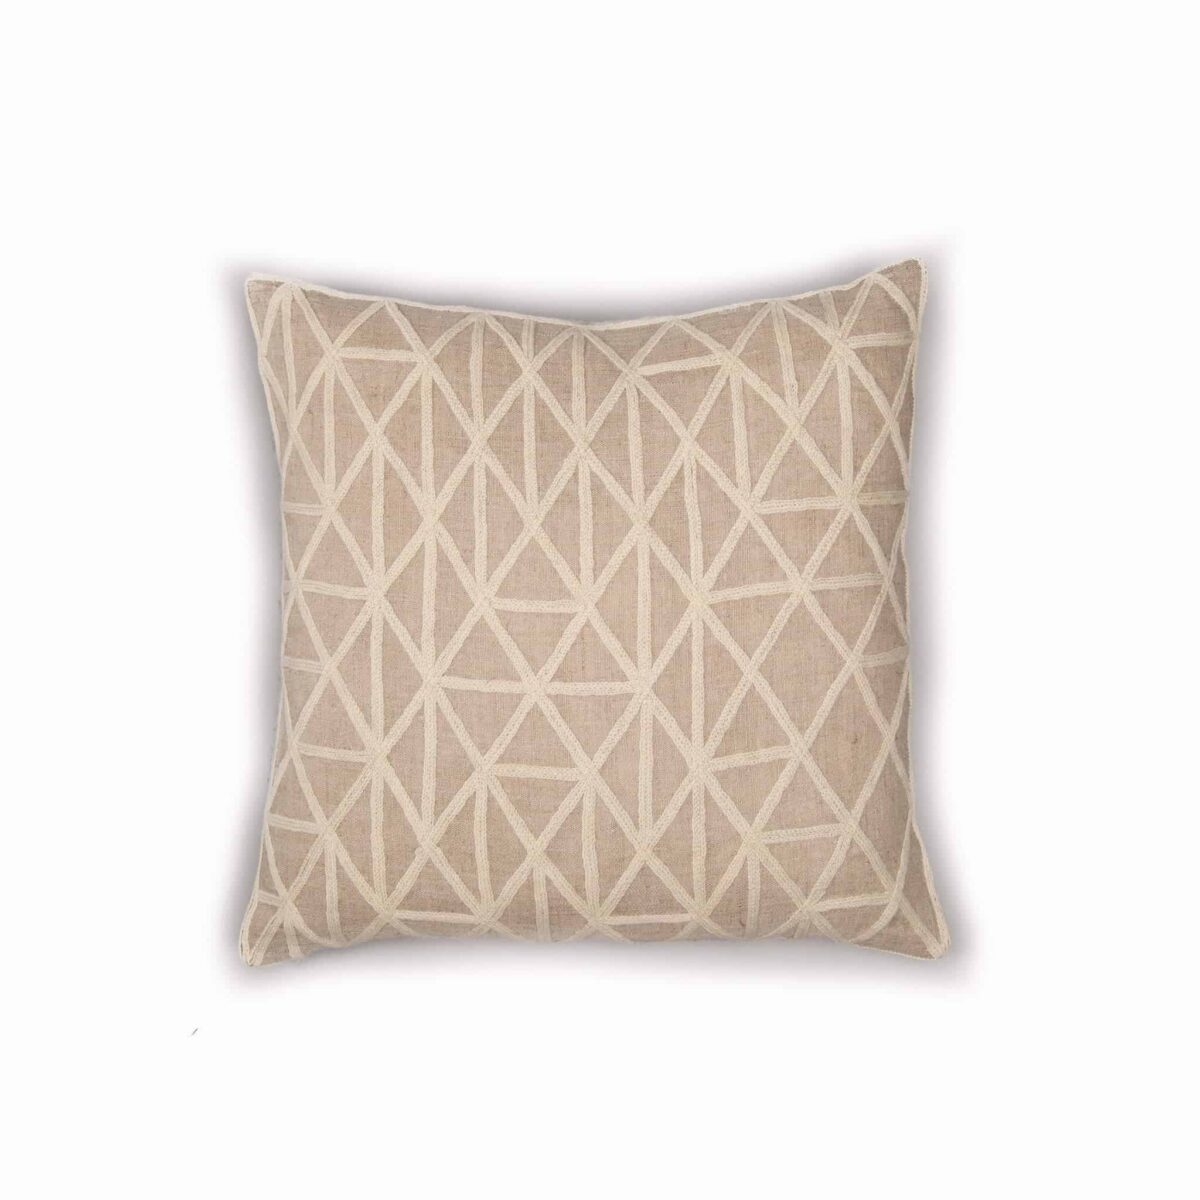 berber-cushion-ecru-natural-linen-2